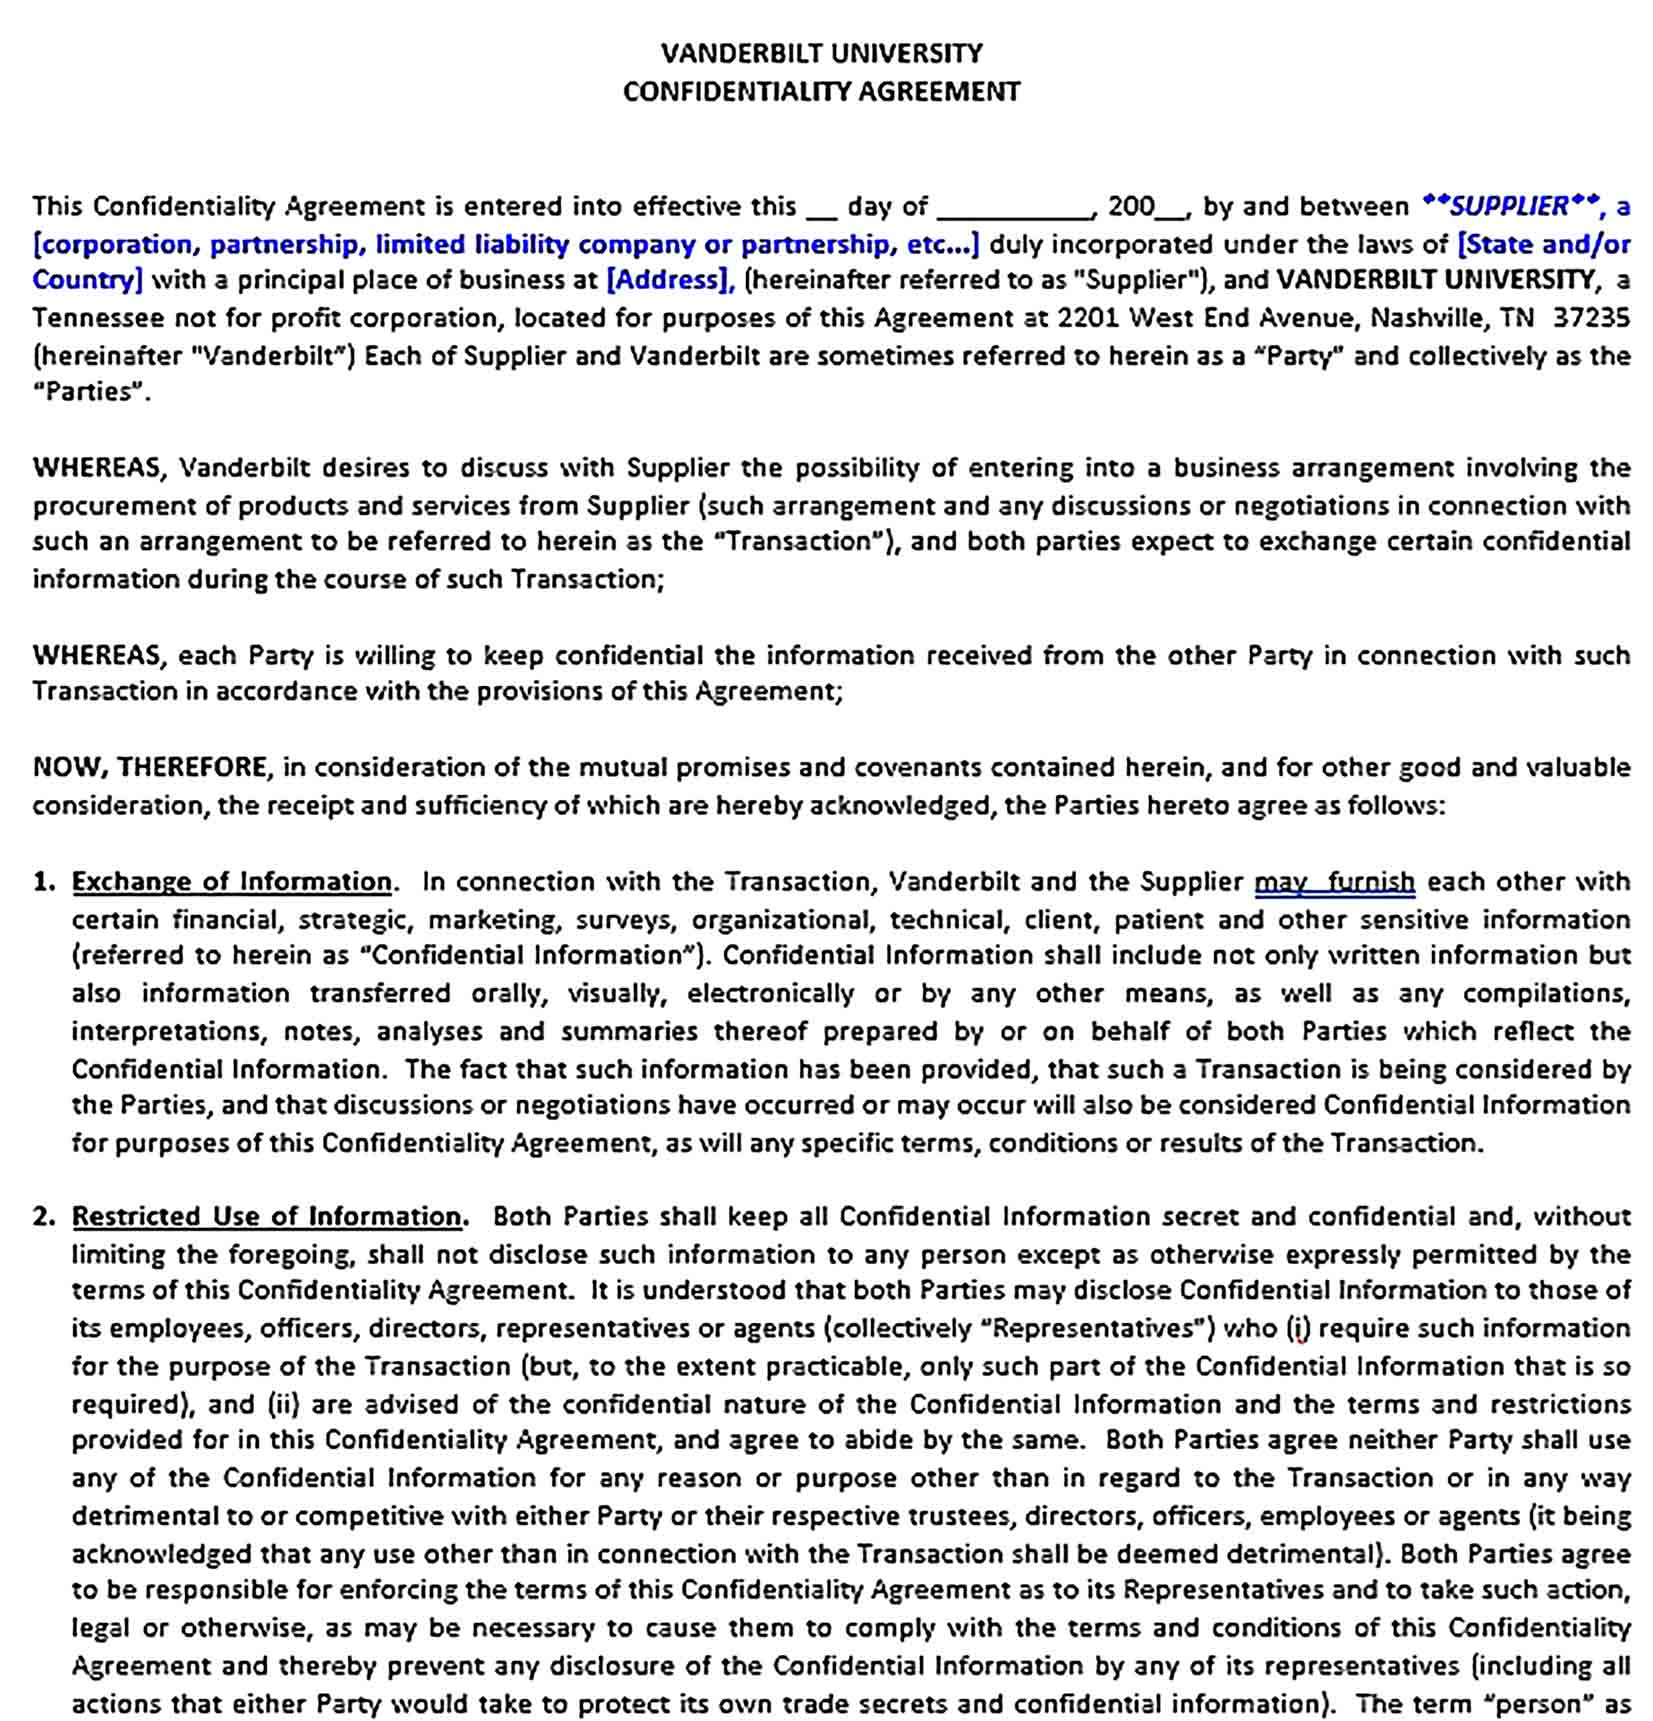 Sample Basic Confidentiality Agreement for Financial Information